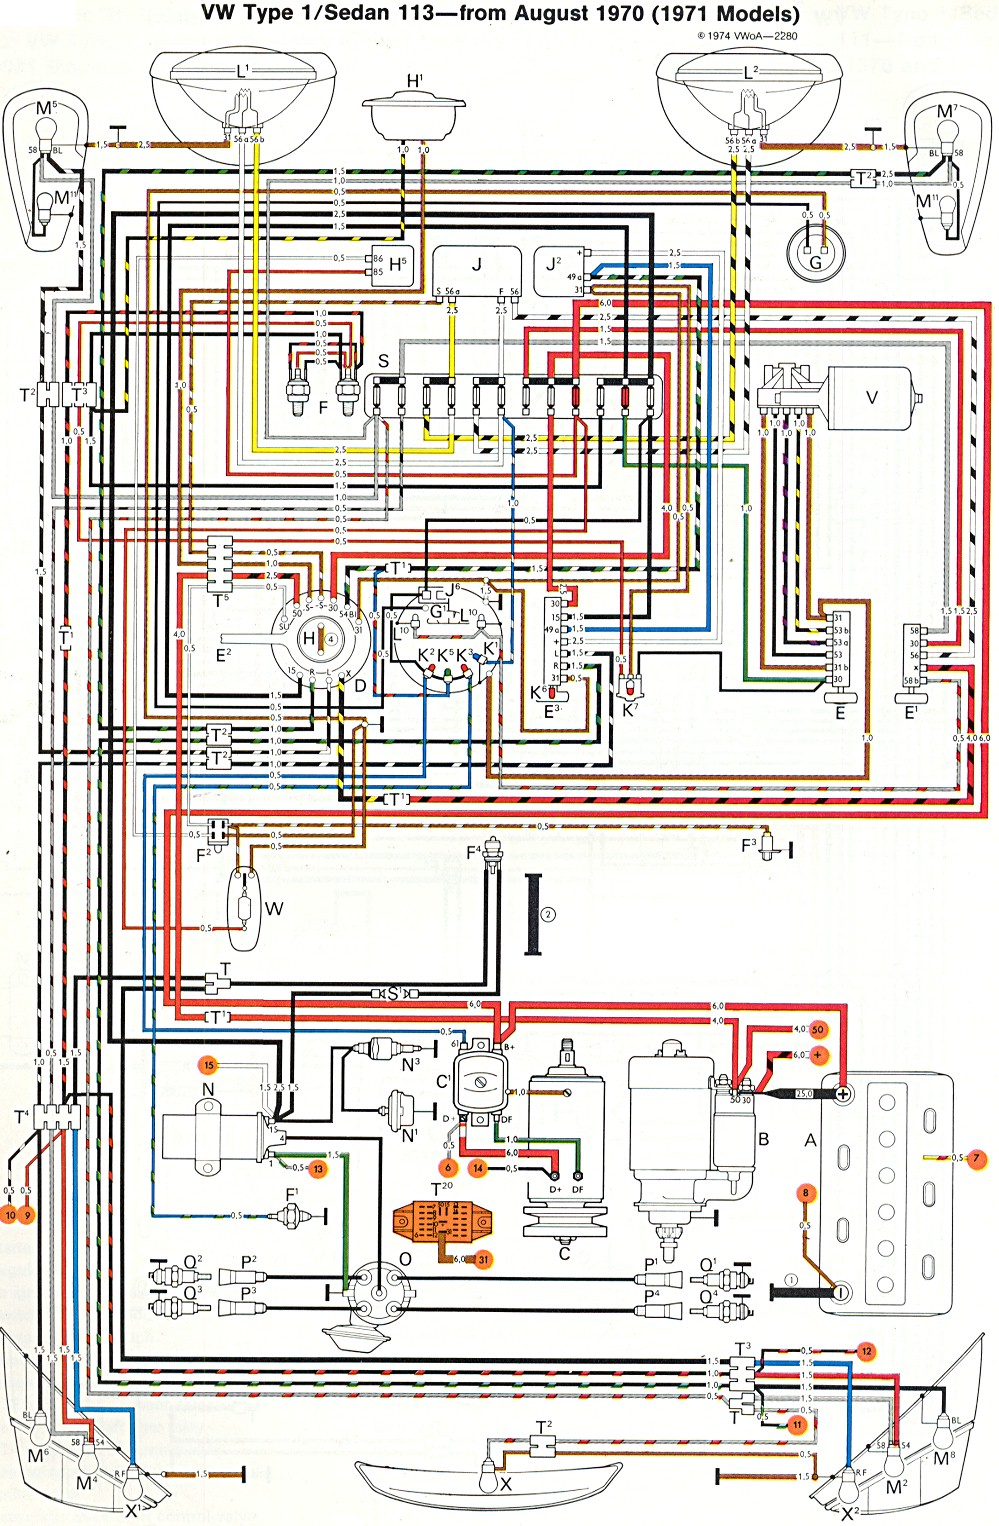 bug_super_71 vw wiring harness diagram cj7 wiring harness diagram \u2022 wiring VW Bug Headlight Assembly at reclaimingppi.co